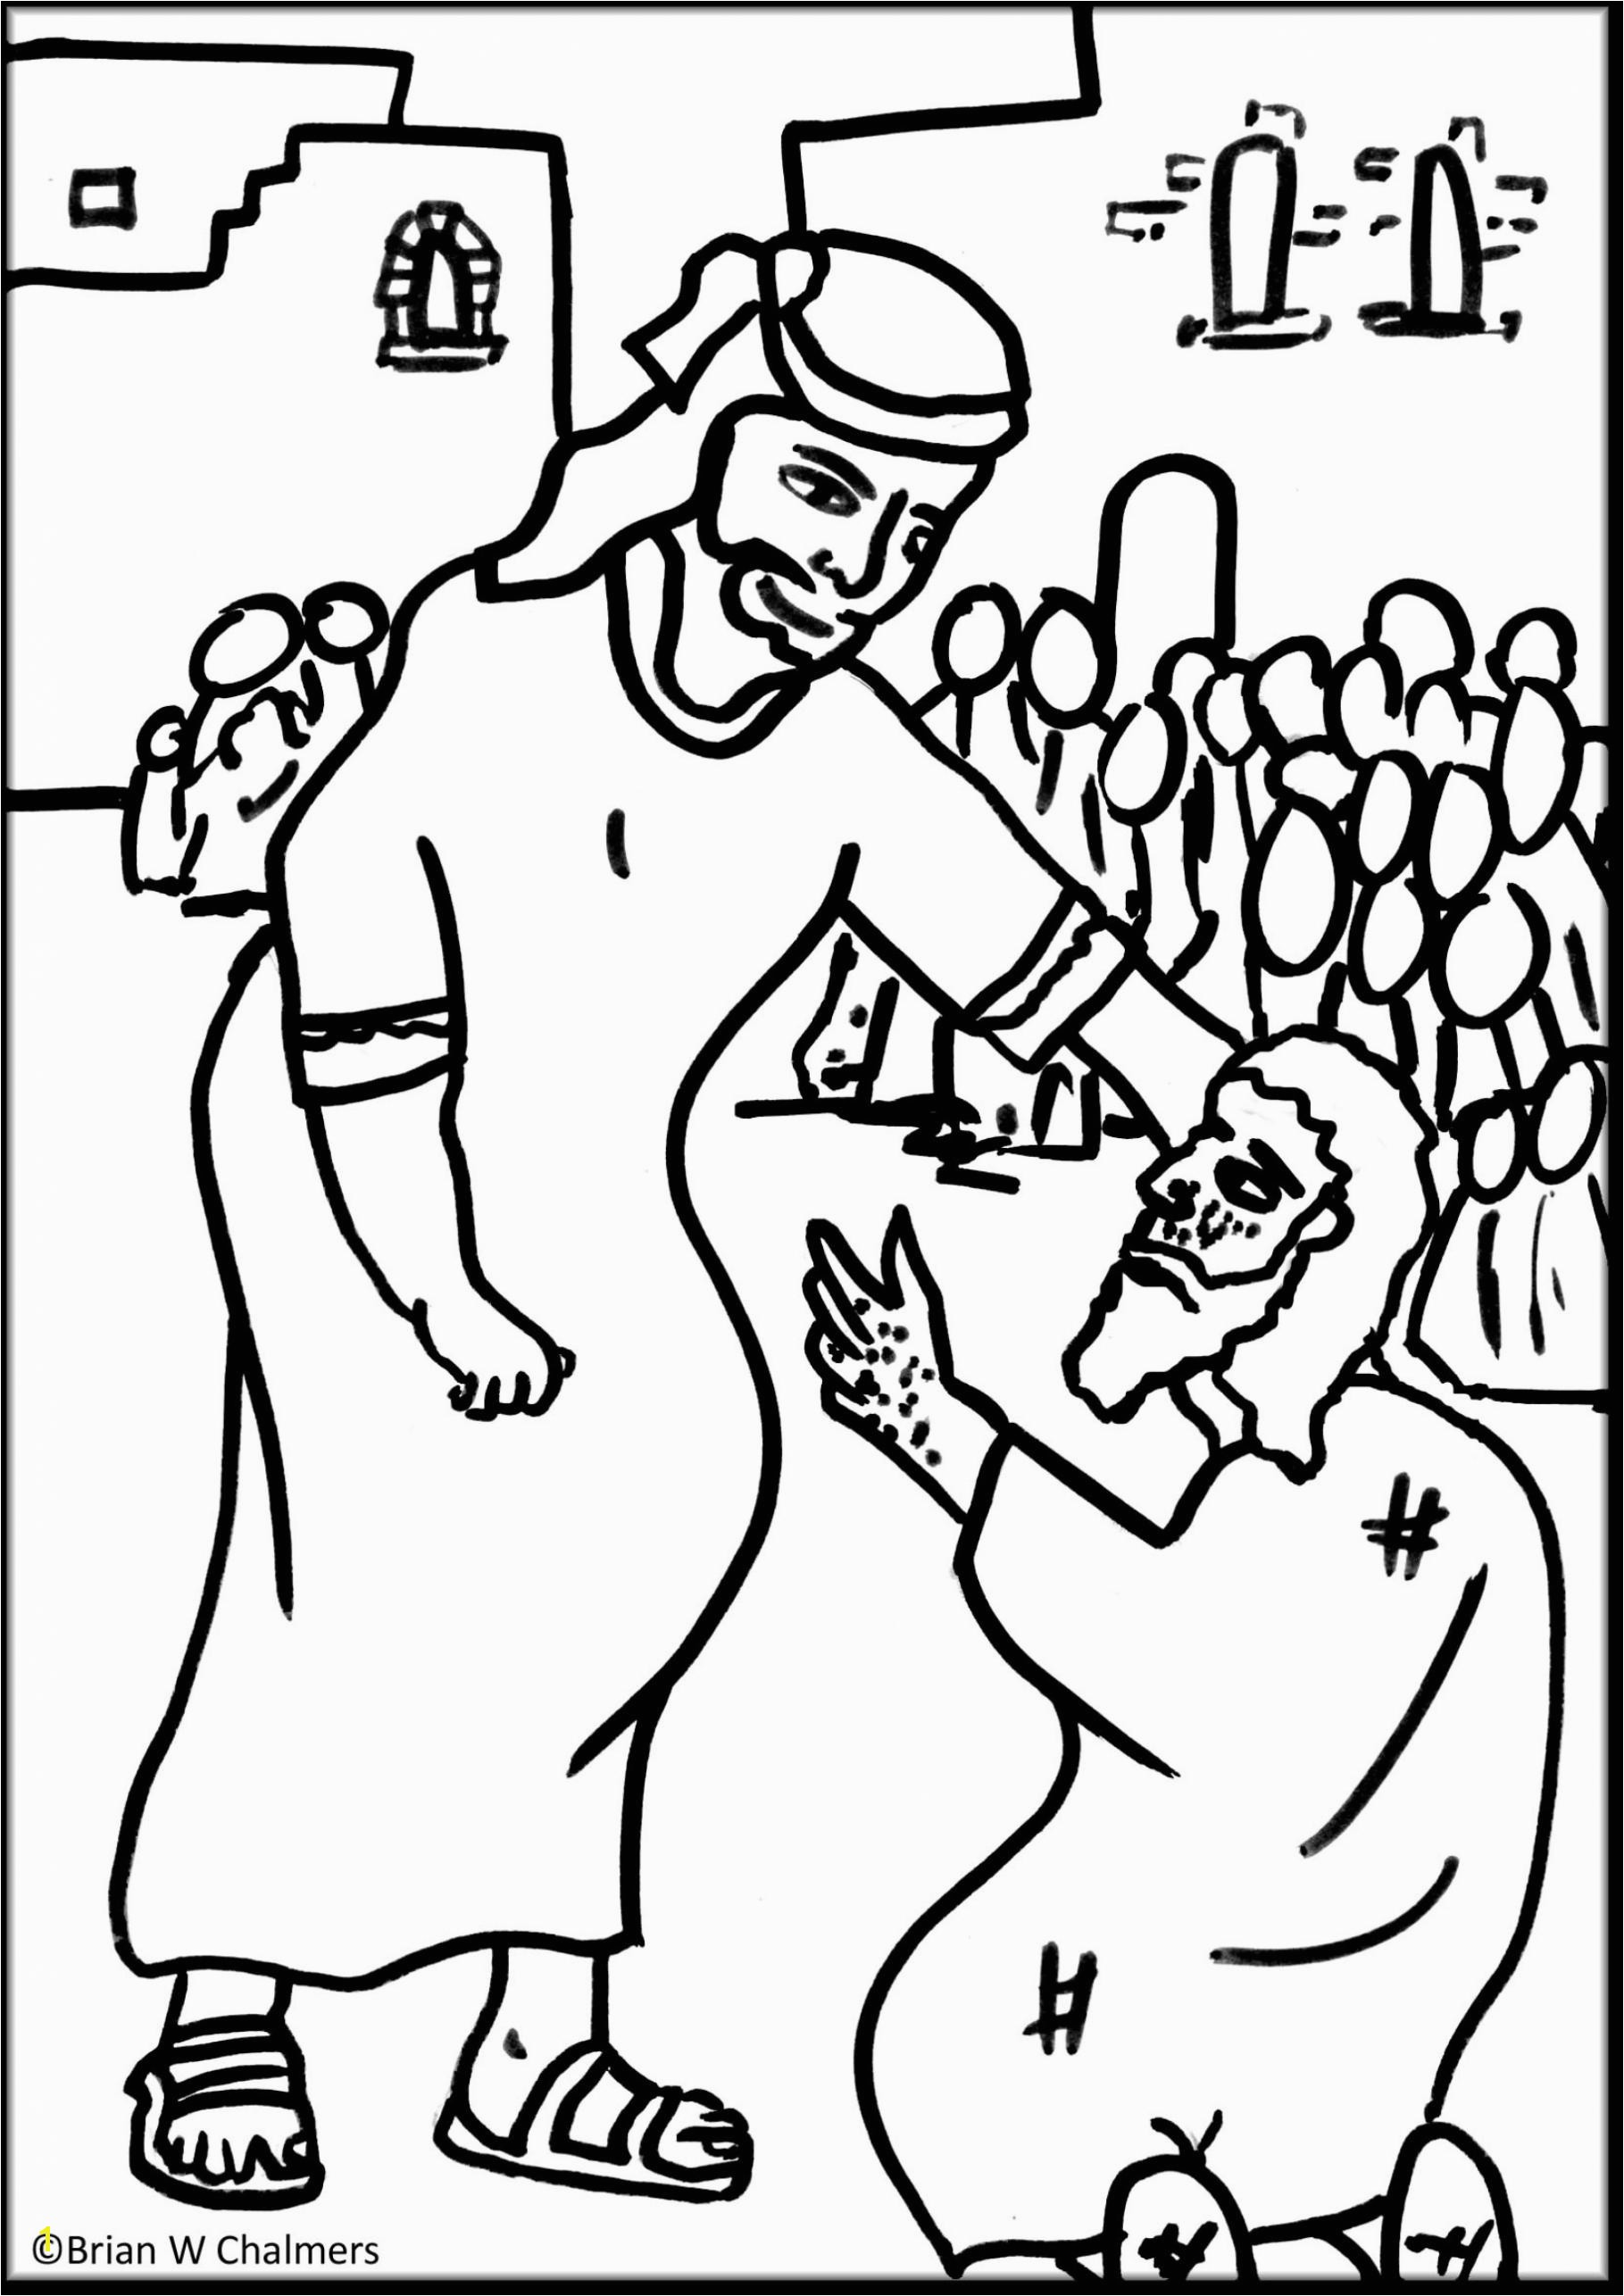 14 New Miriam Gets Leprosy Coloring Page Image